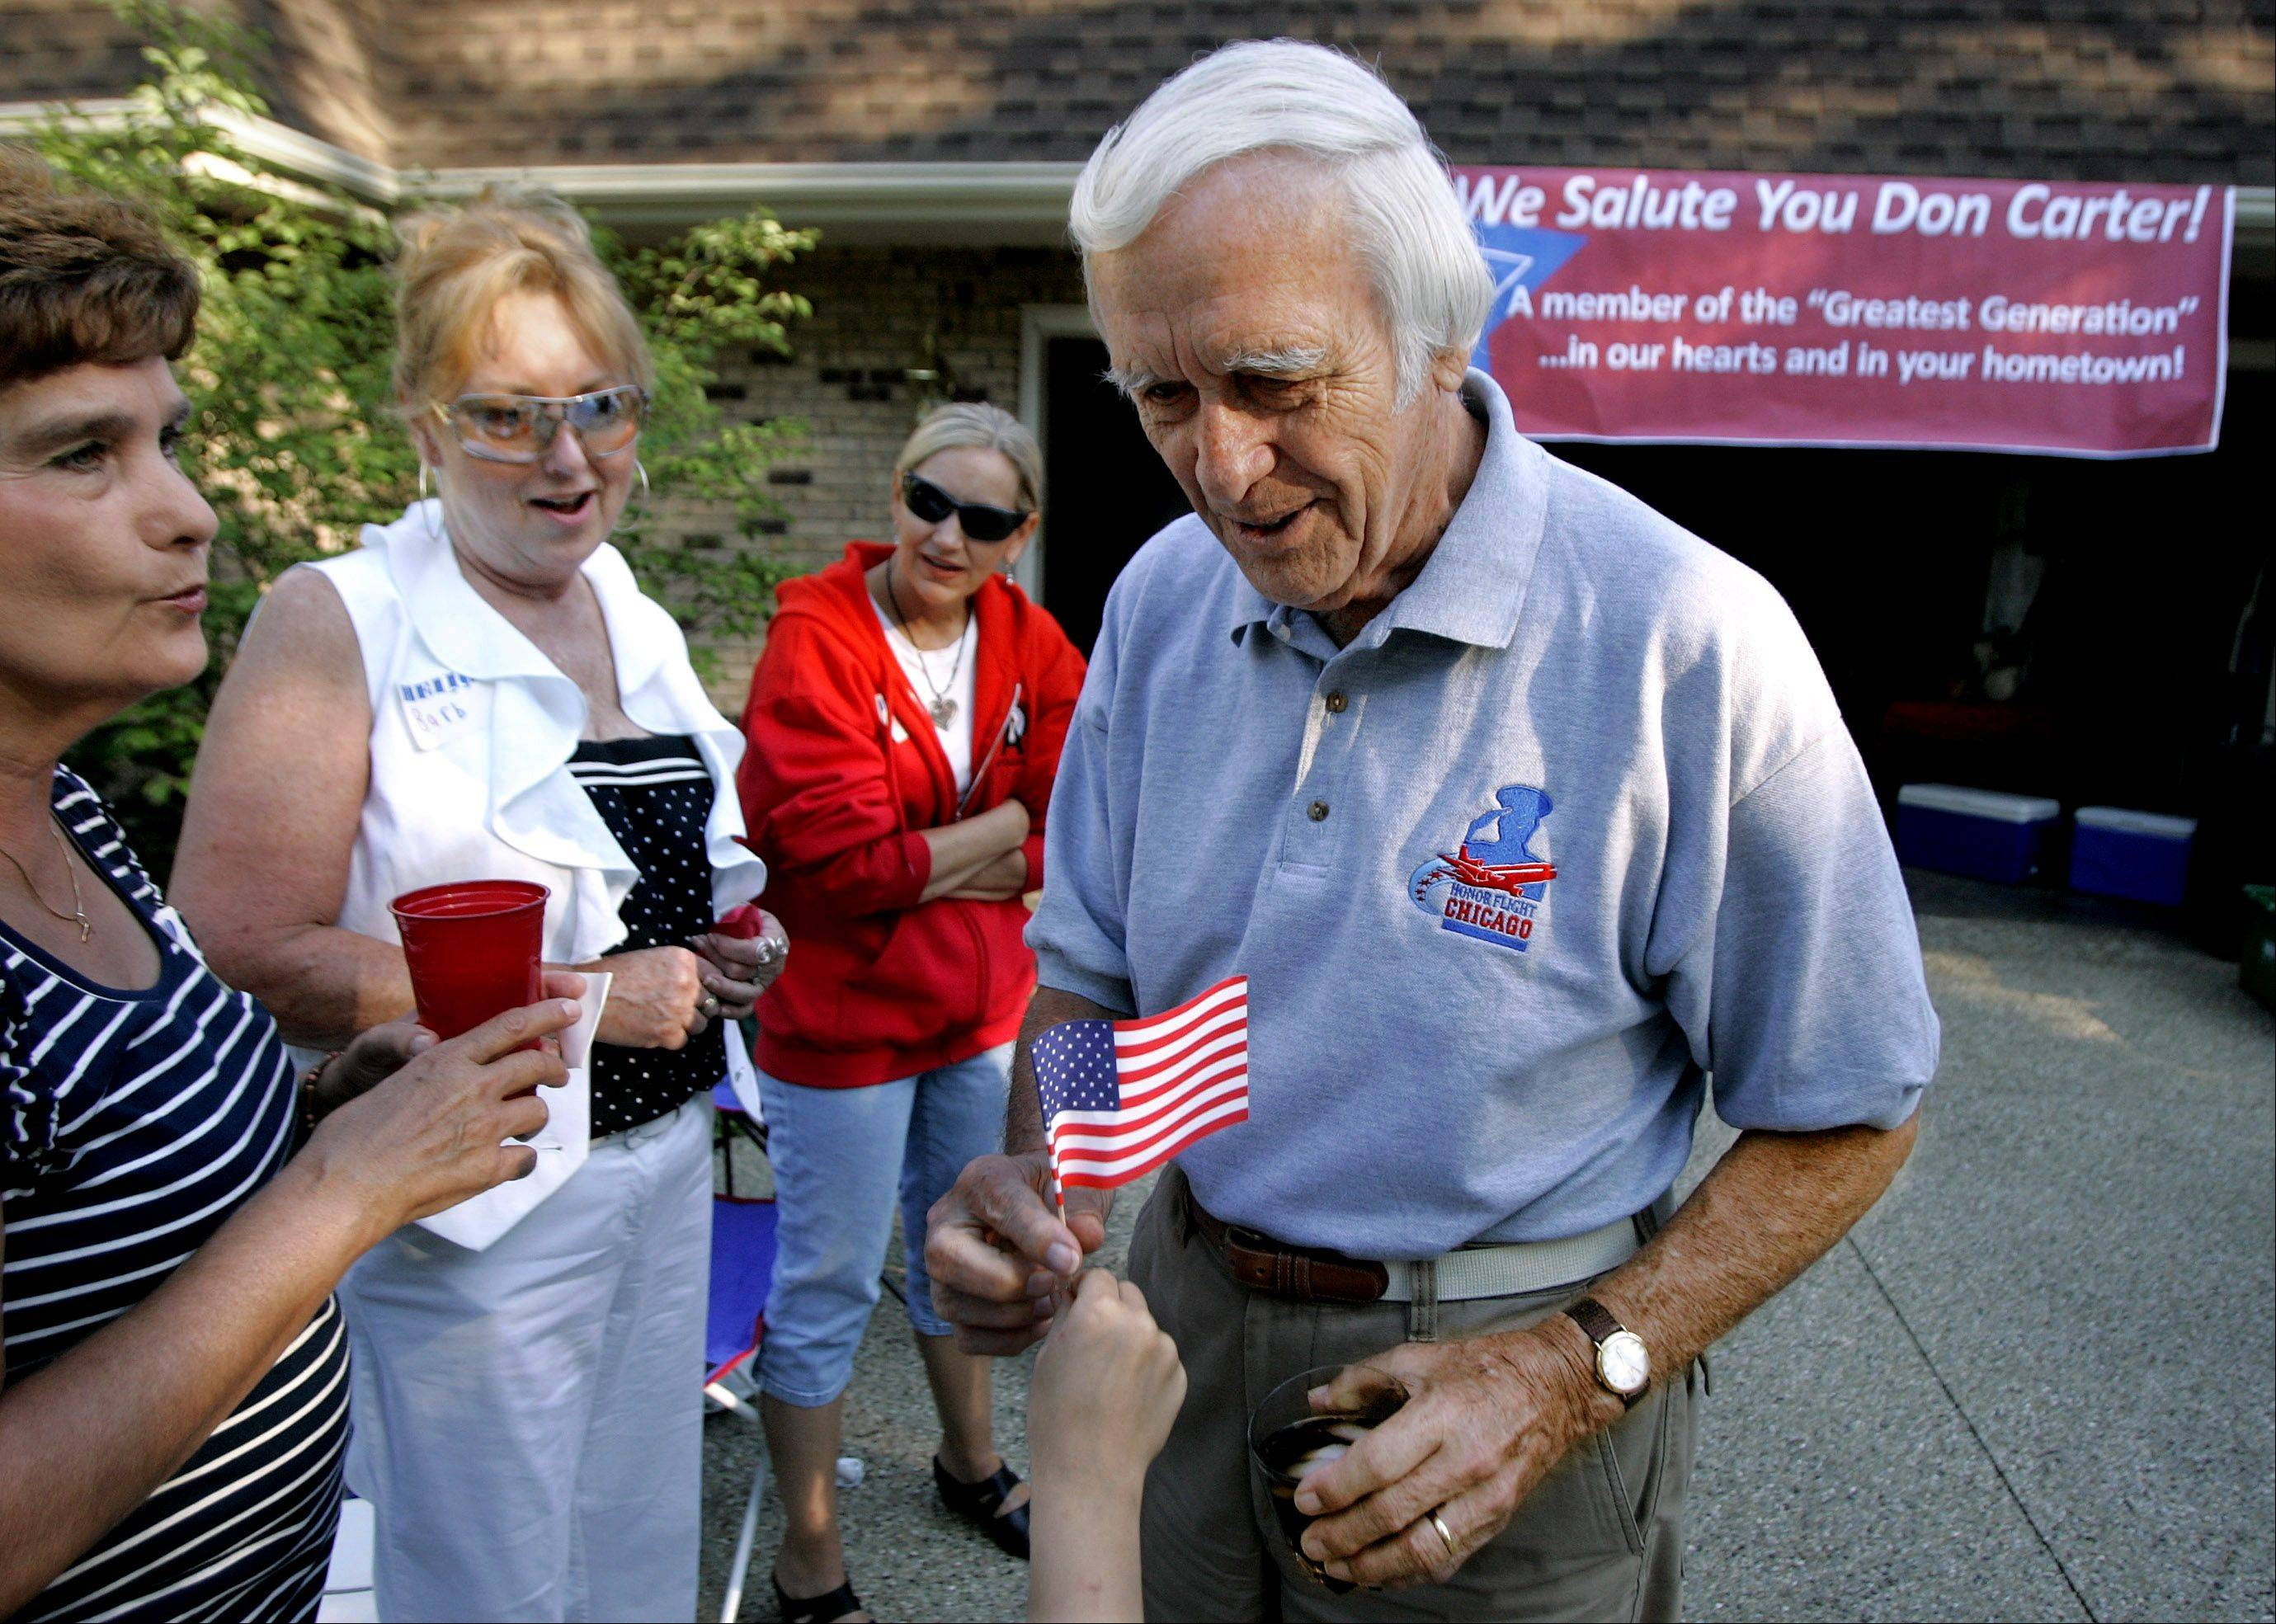 WWII veteran Donald Carter receives an American flag as he attends a surprise block party in his honor Thursday in Libertyville. Carter returned recently from an Honor Flight to Washington D.C.